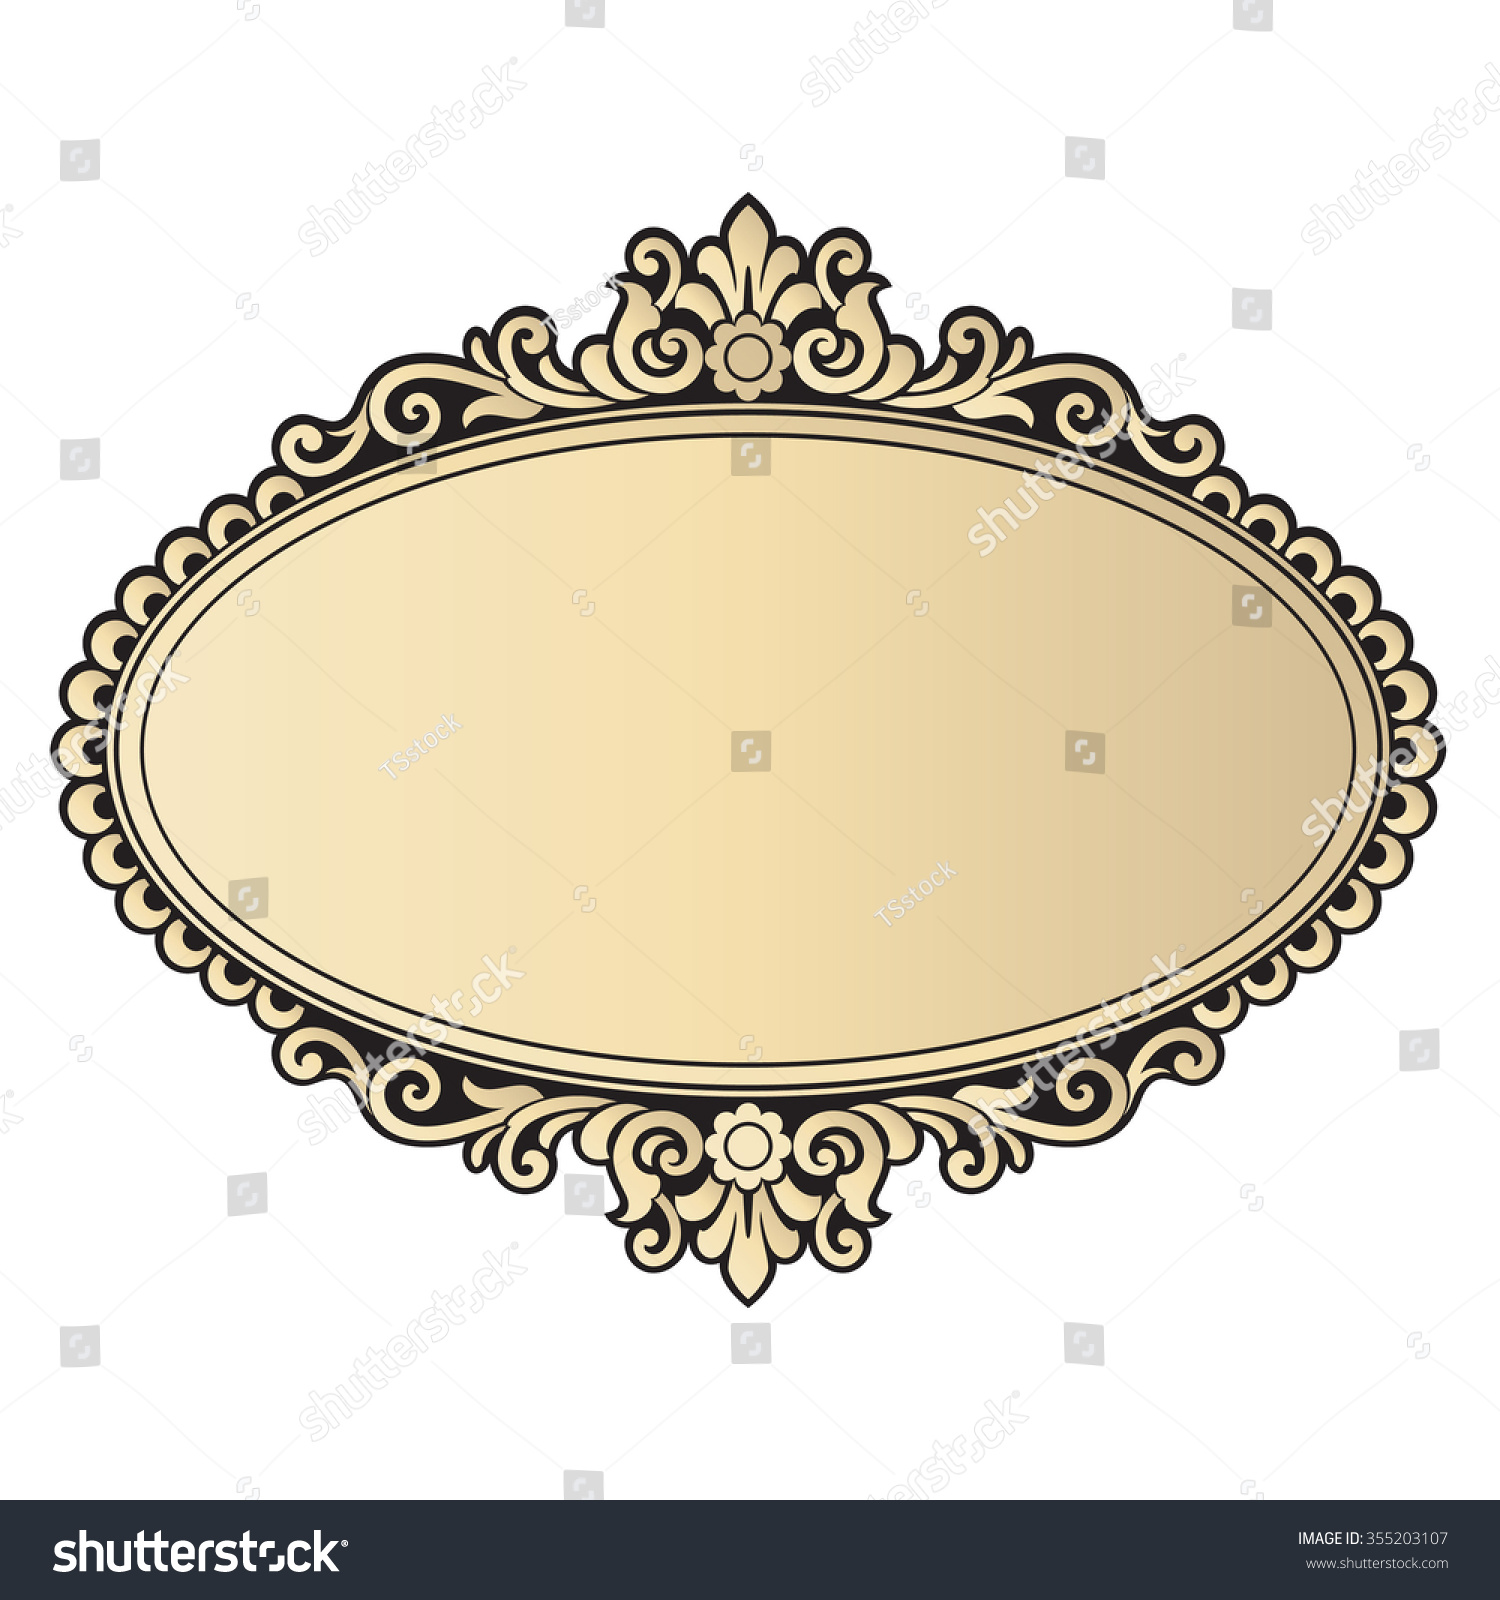 Vector vintage border frame engraving retro stock vector for Rococo style frame